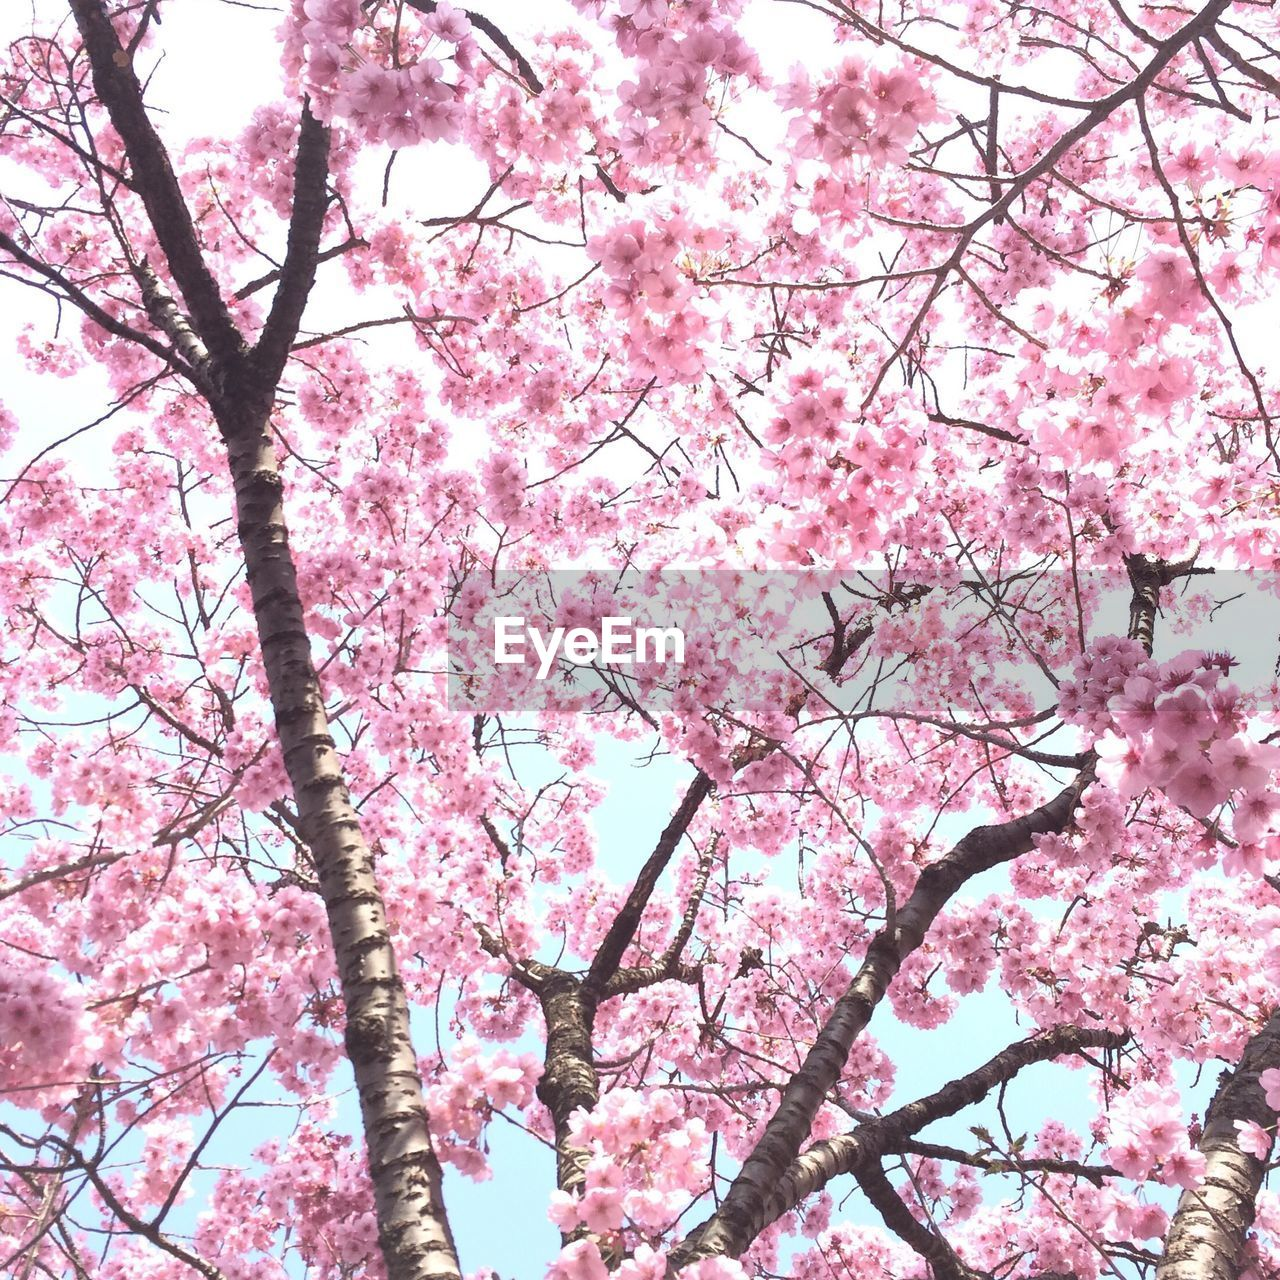 flower, pink color, tree, blossom, cherry blossom, beauty in nature, branch, springtime, cherry tree, growth, nature, low angle view, freshness, fragility, botany, magnolia, pink, no people, orchard, day, backgrounds, petal, plum blossom, outdoors, sky, spring, tranquility, clear sky, scenics, blooming, flower head, close-up